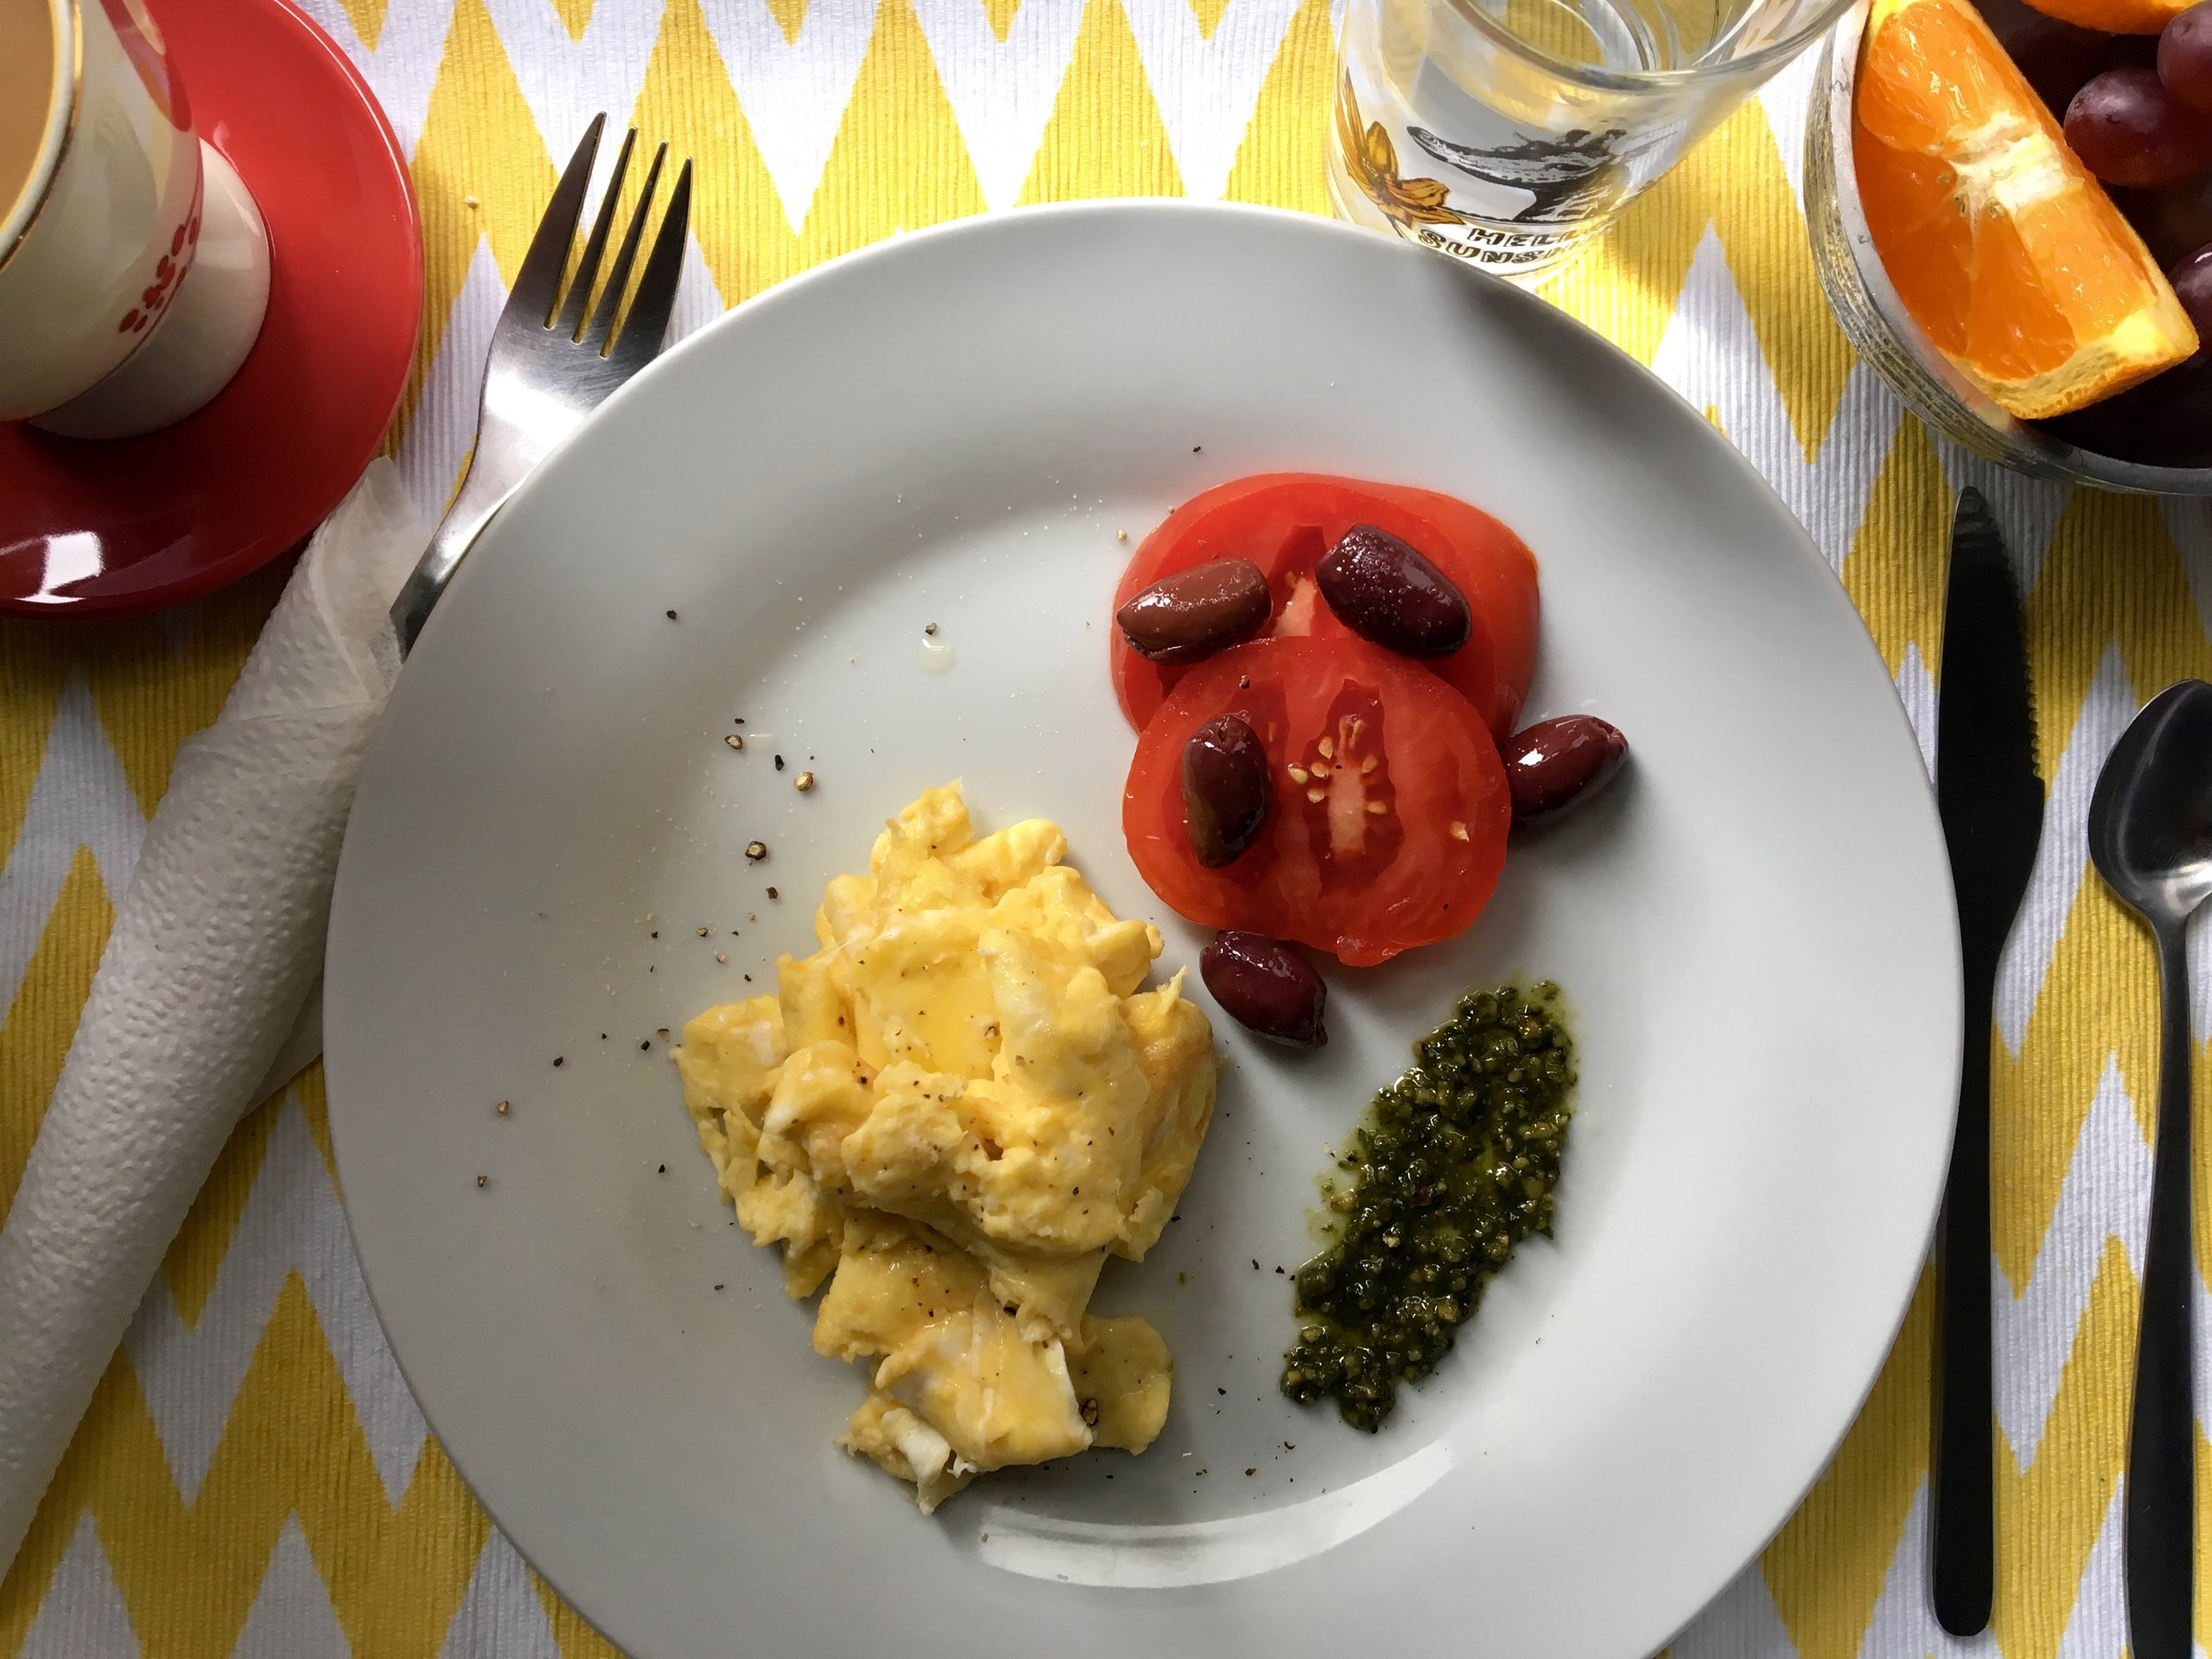 breakfast italian style: tomato, truffled eggs + pesto